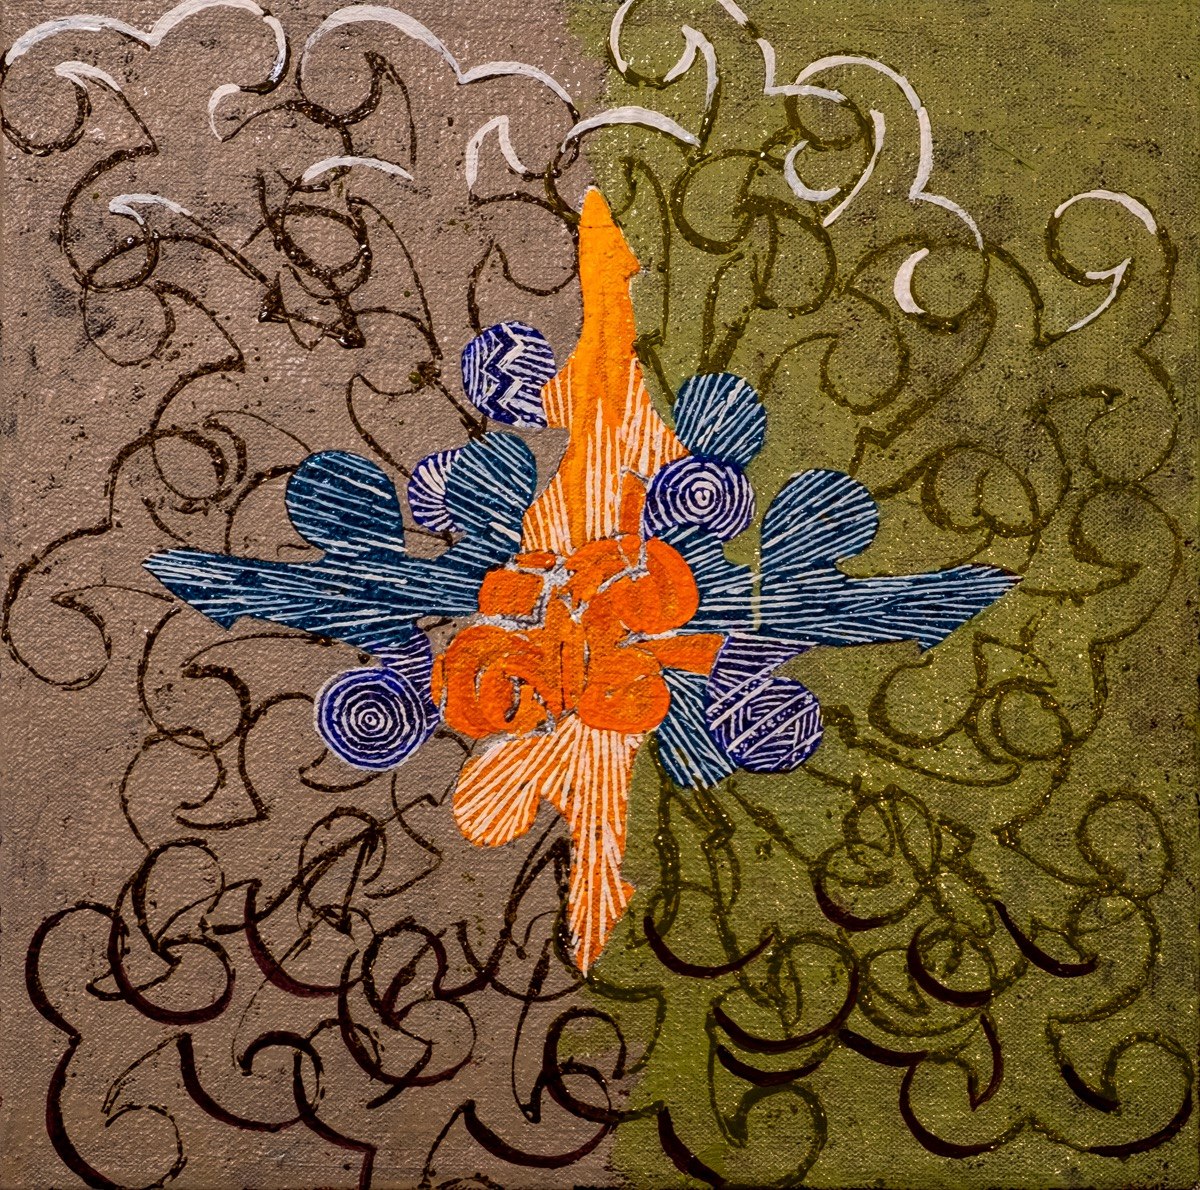 "Small Creature Series 12"" x 12"" 2019 Oil on Canvas REF# 2019/12"